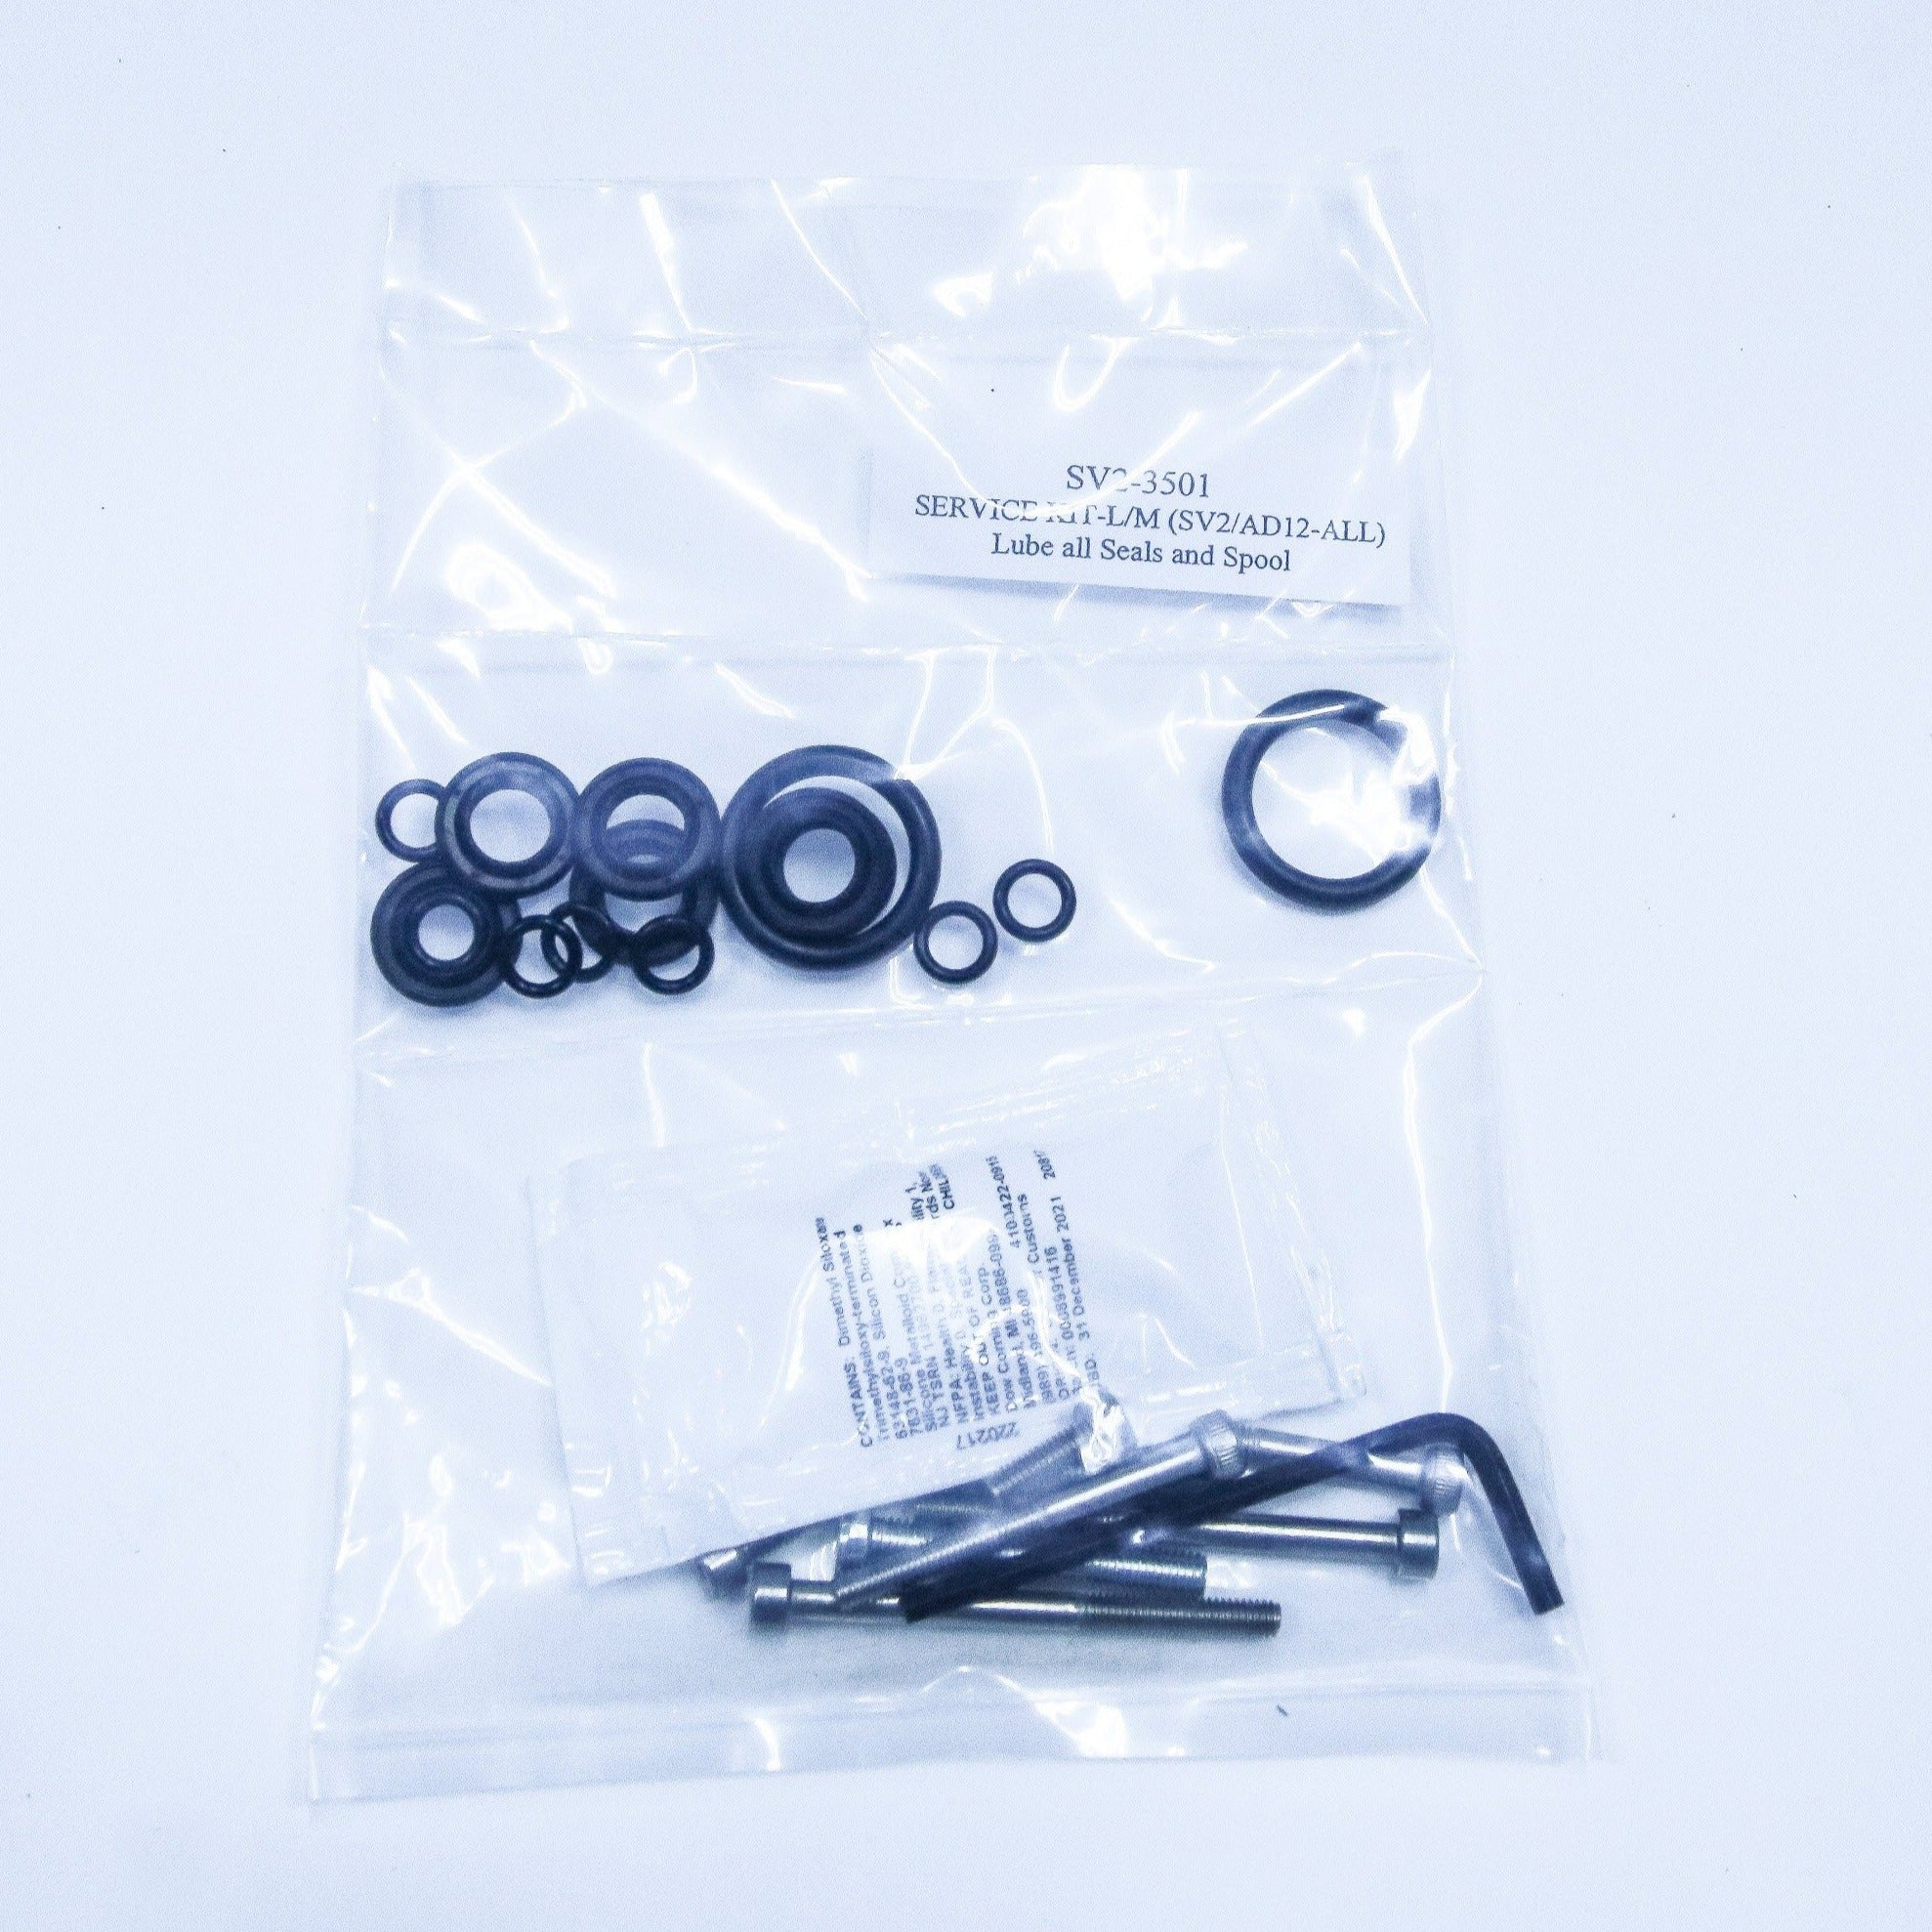 SV2-3501 Service Kit-L/M [AD12-SV2-All] - Mathers Controls